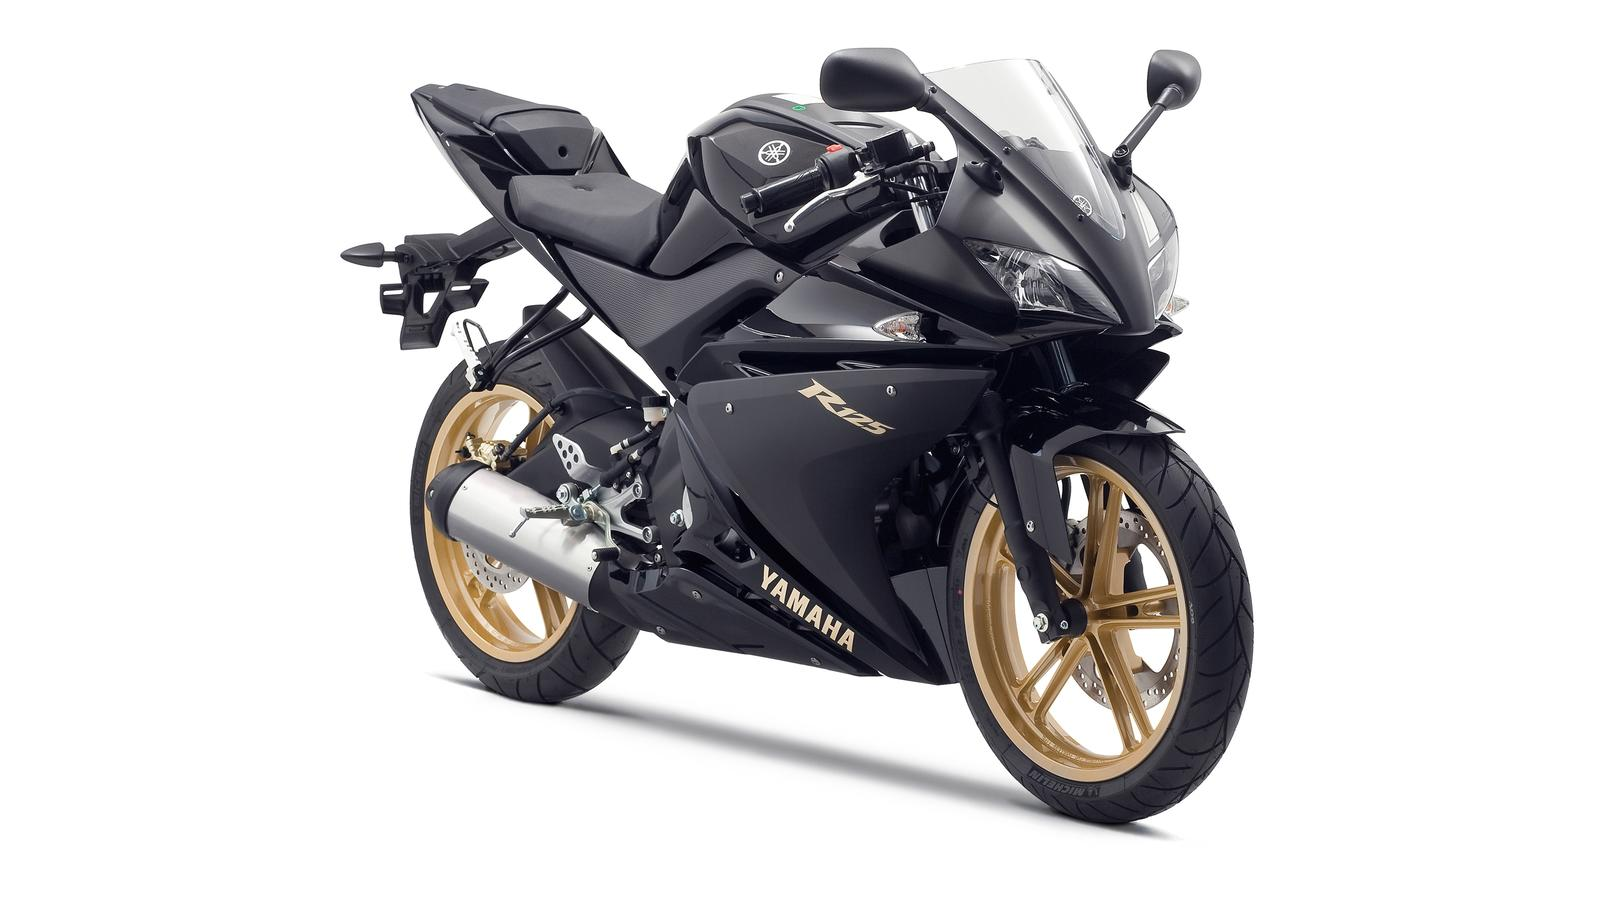 yamaha yzf 125 car interior design. Black Bedroom Furniture Sets. Home Design Ideas